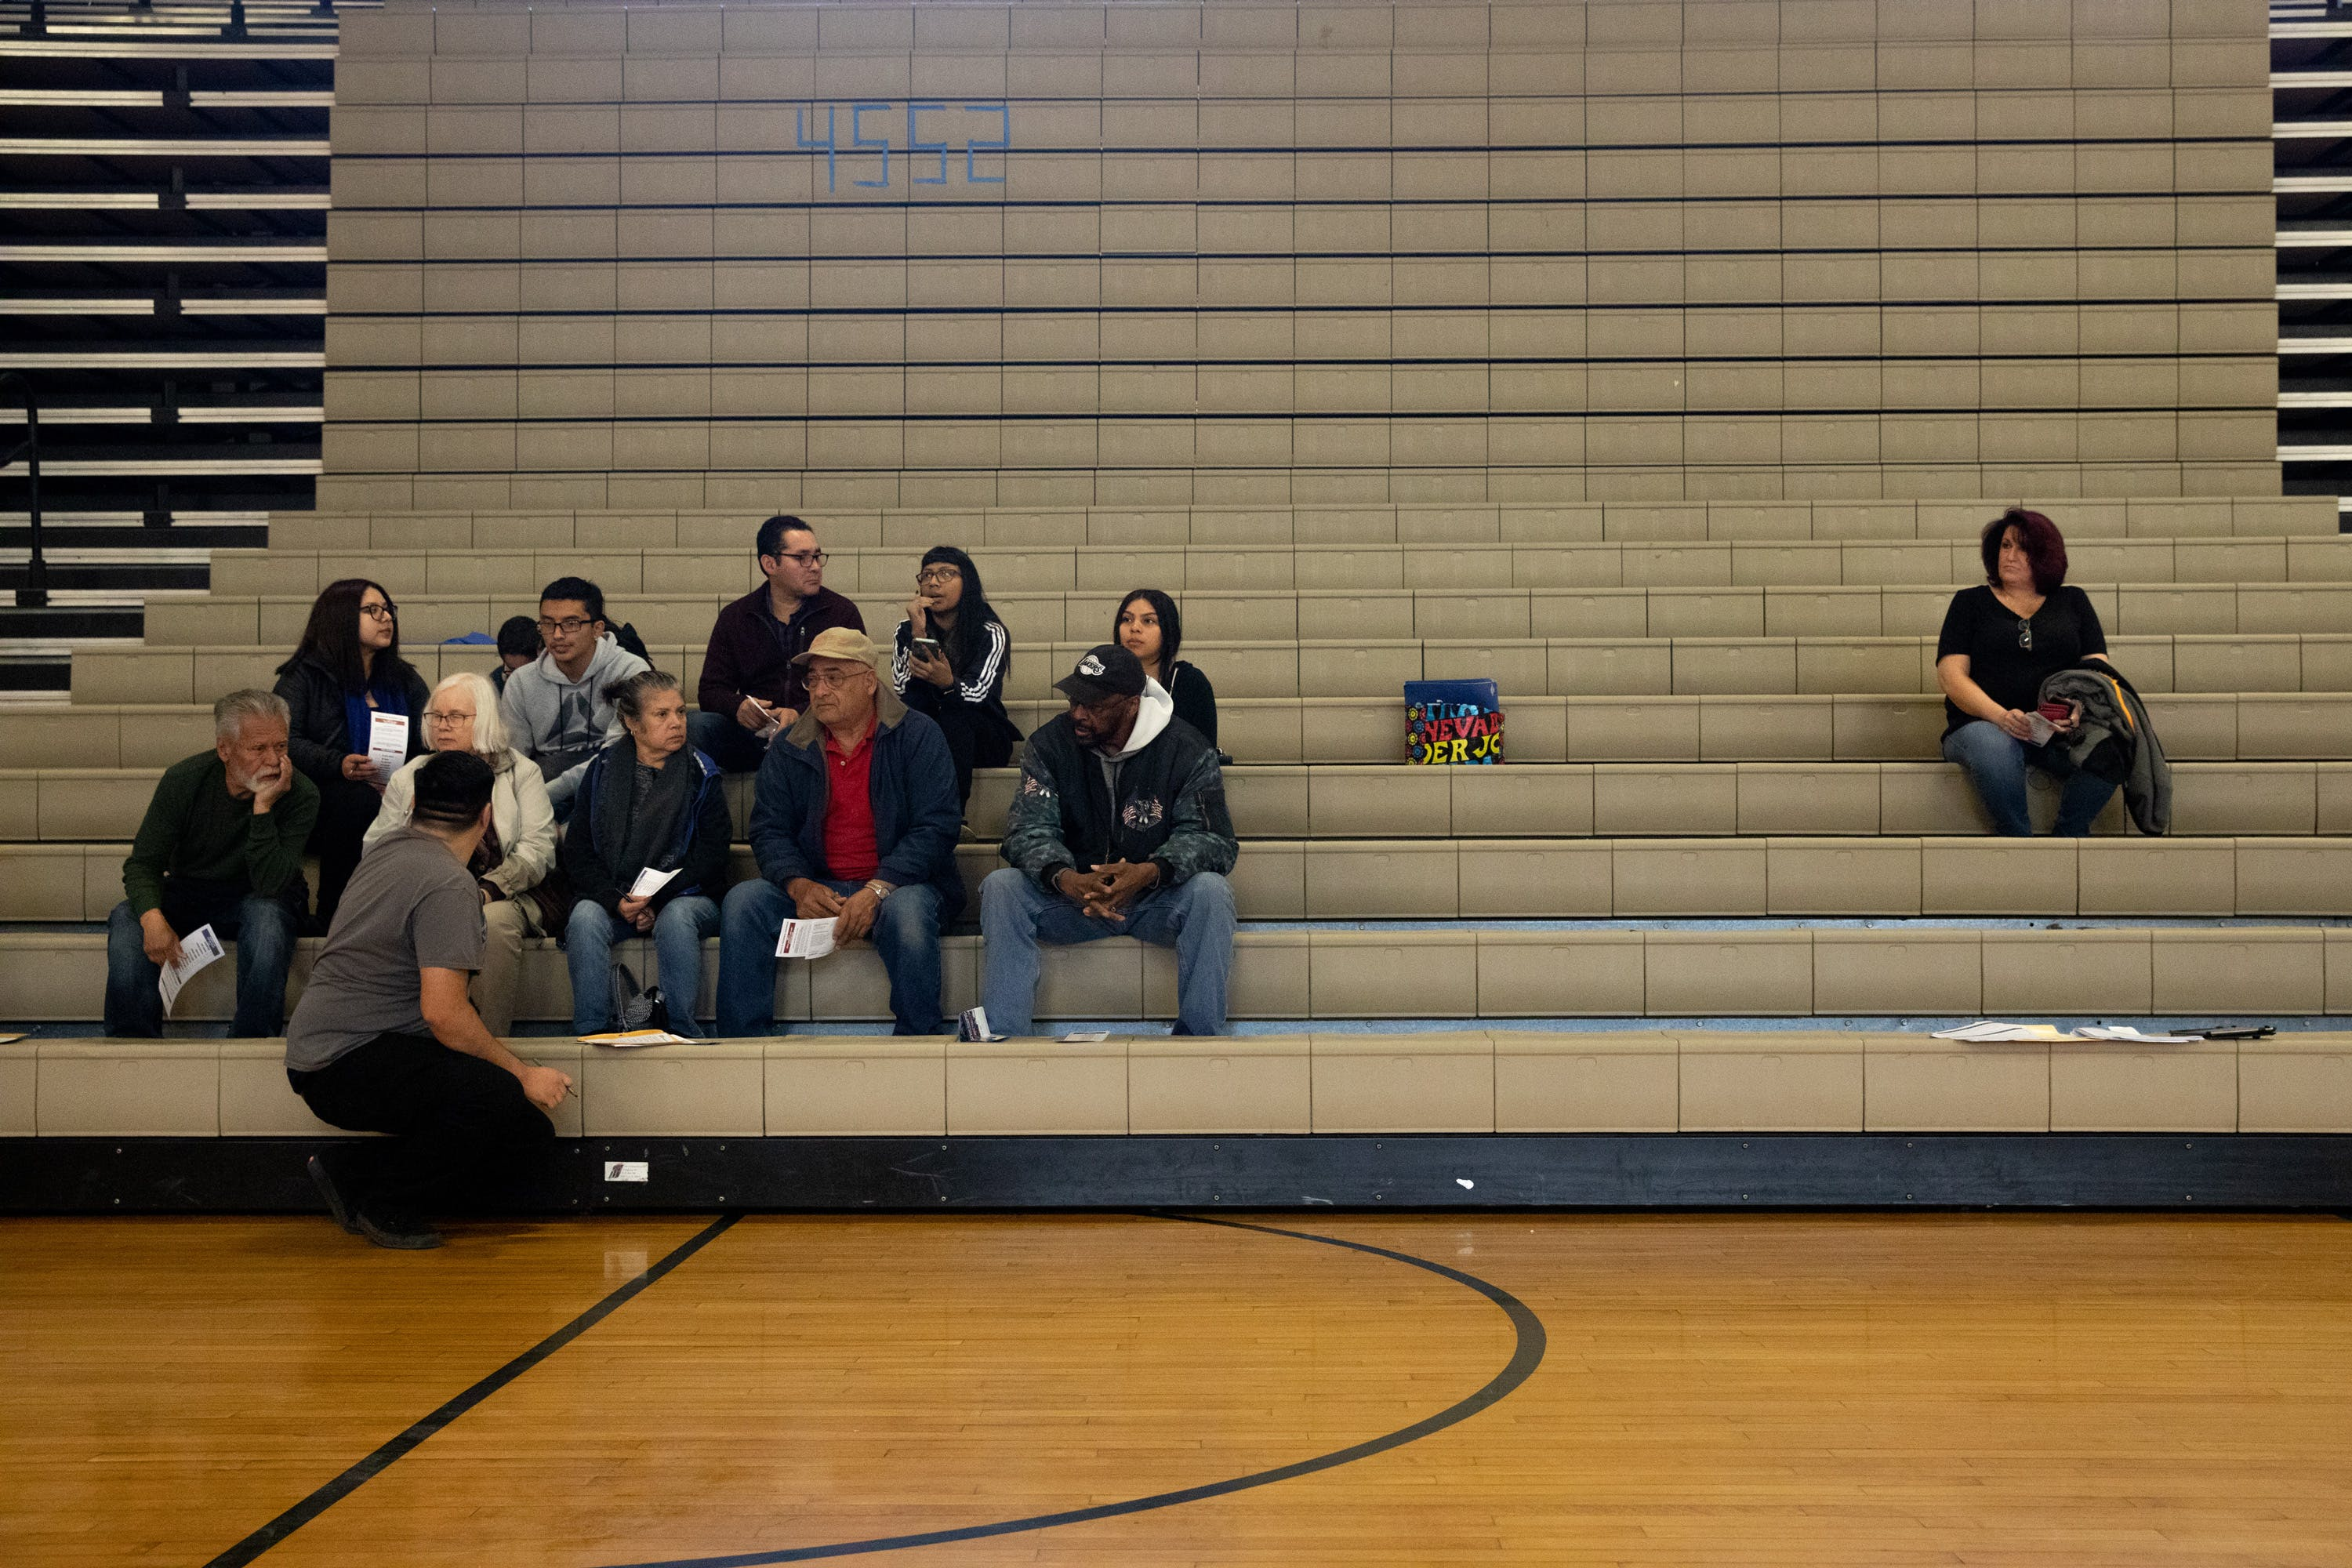 Voters wait for the tally at the Nevada Caucuses at Desert Pines Highschool in Las Vegas, Nevada on February 22nd, 2020. On the left Bernie Sanders supporters, on the right one Tulsi Gabbard voter. Krystal Ramirez for The Intercept